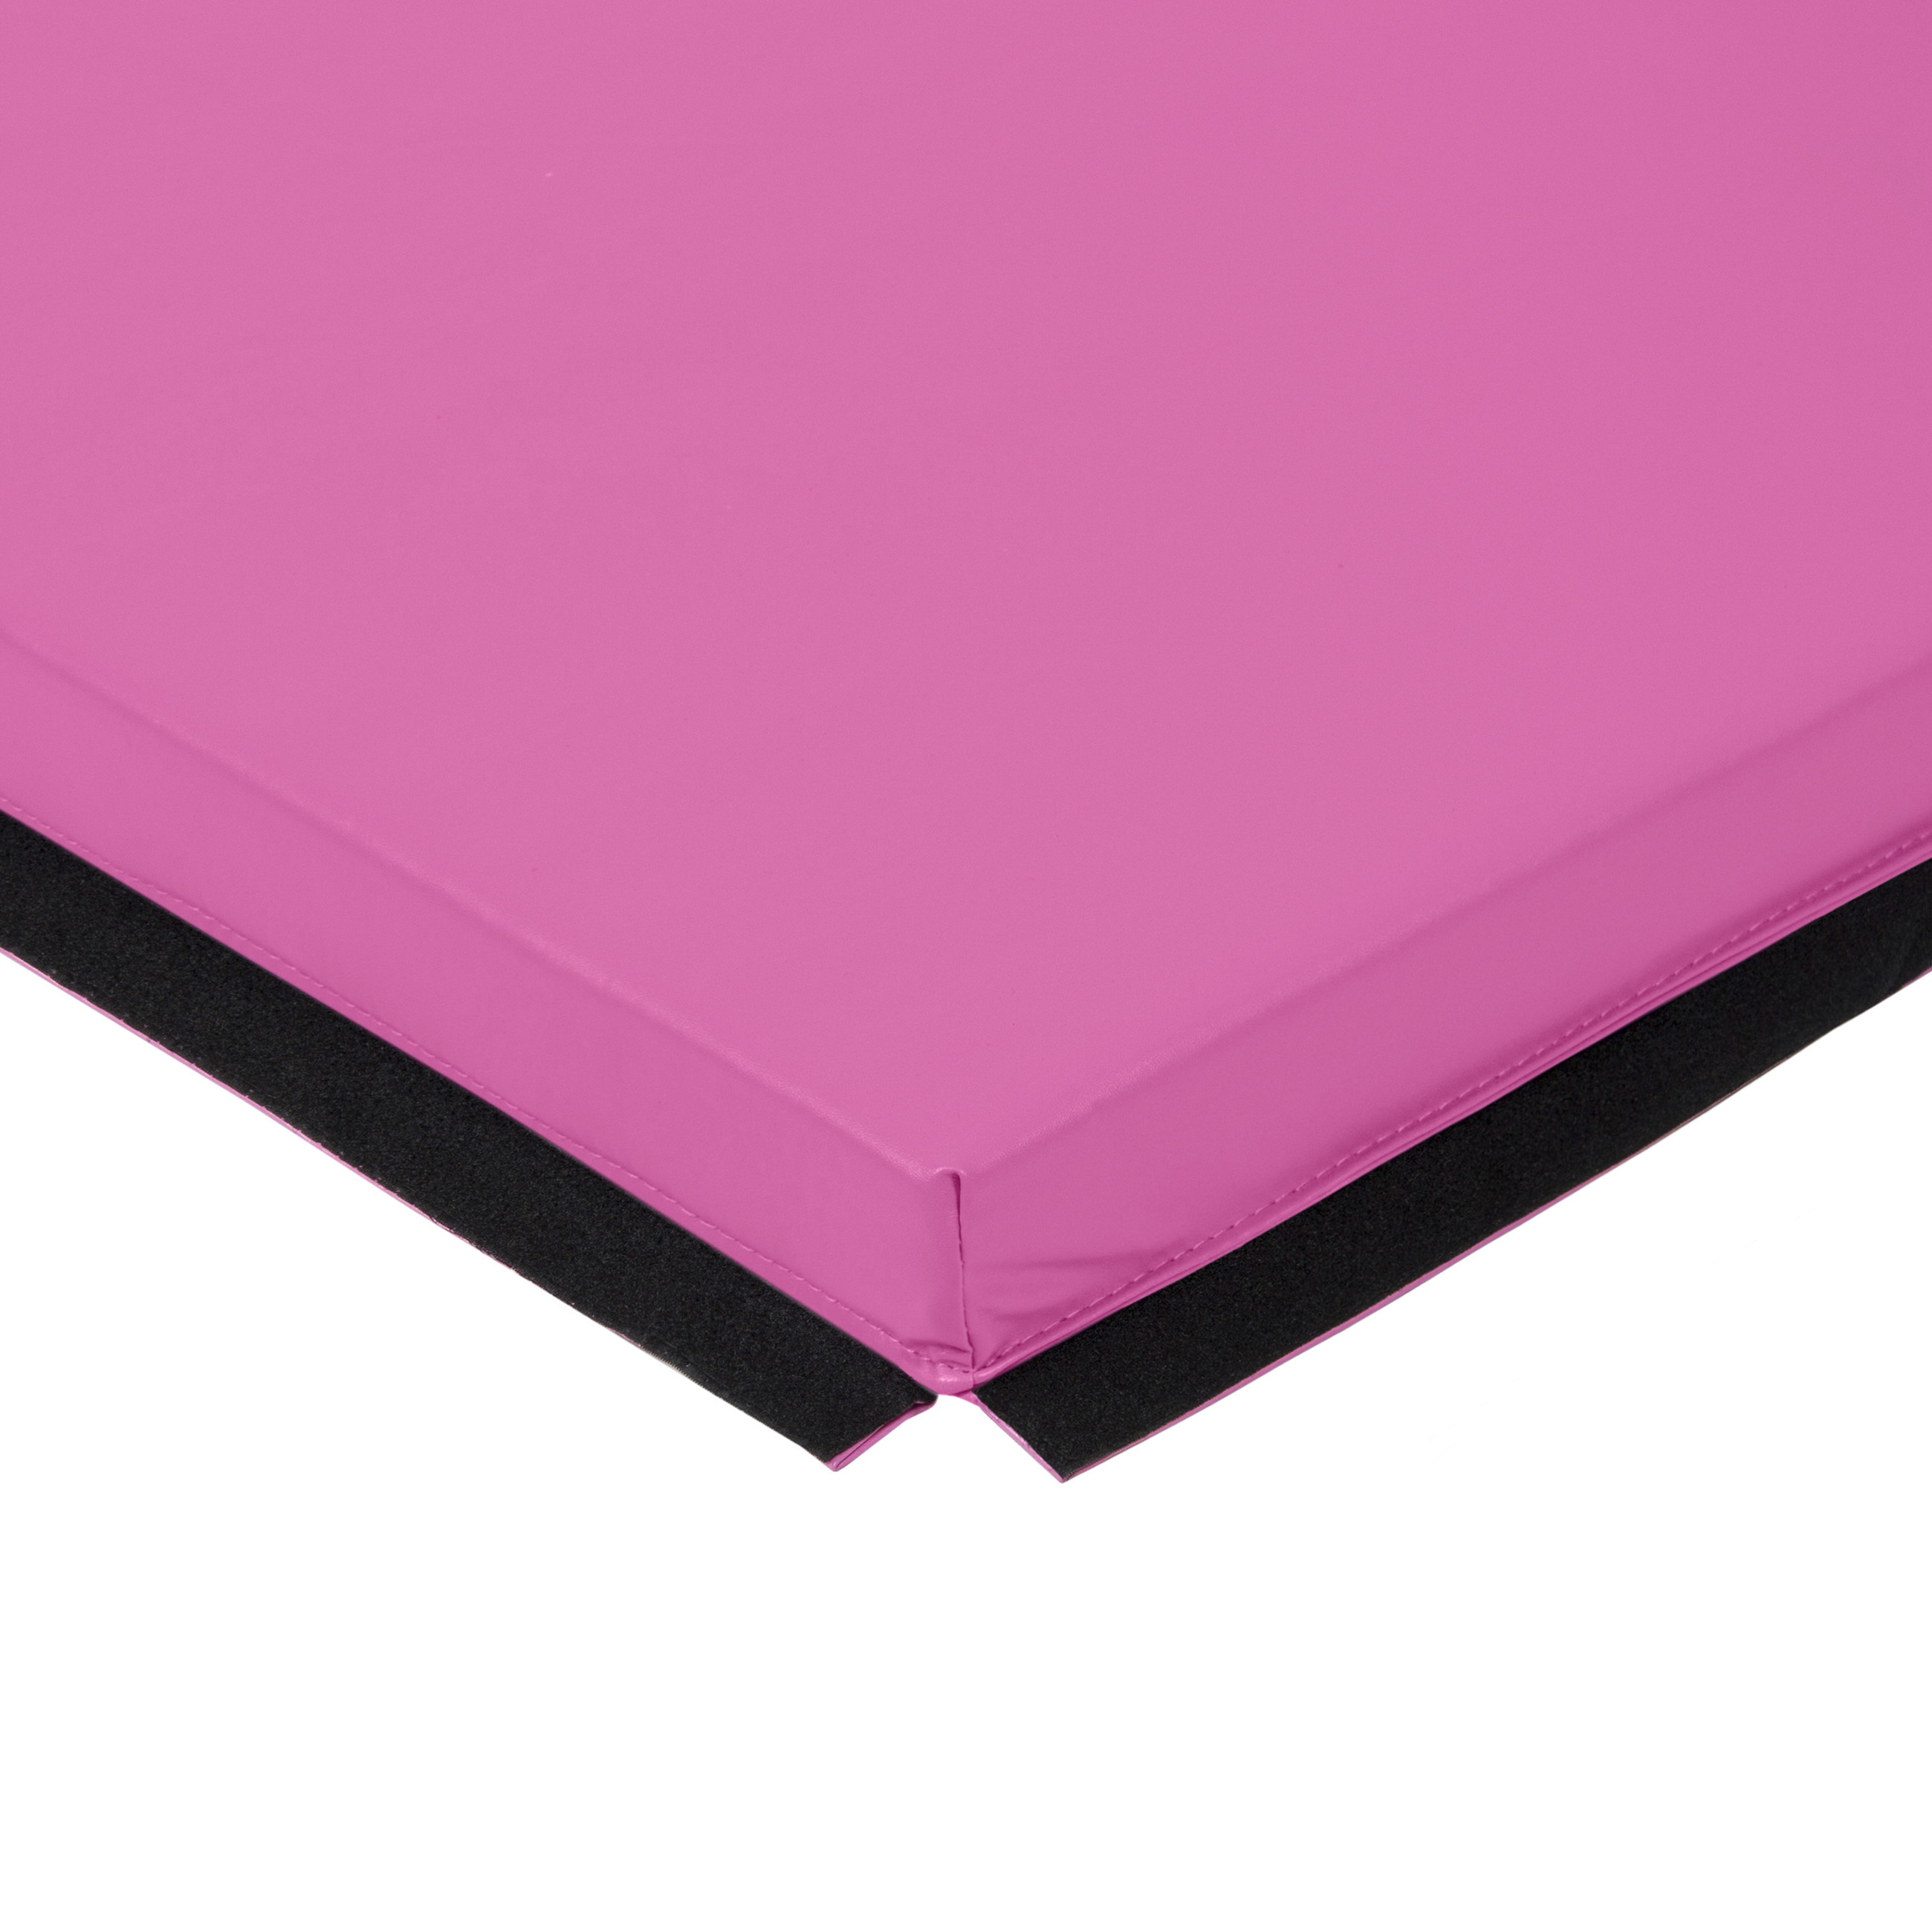 cheap mats exercise buy detail mat folded product gymnastics vinyl gym